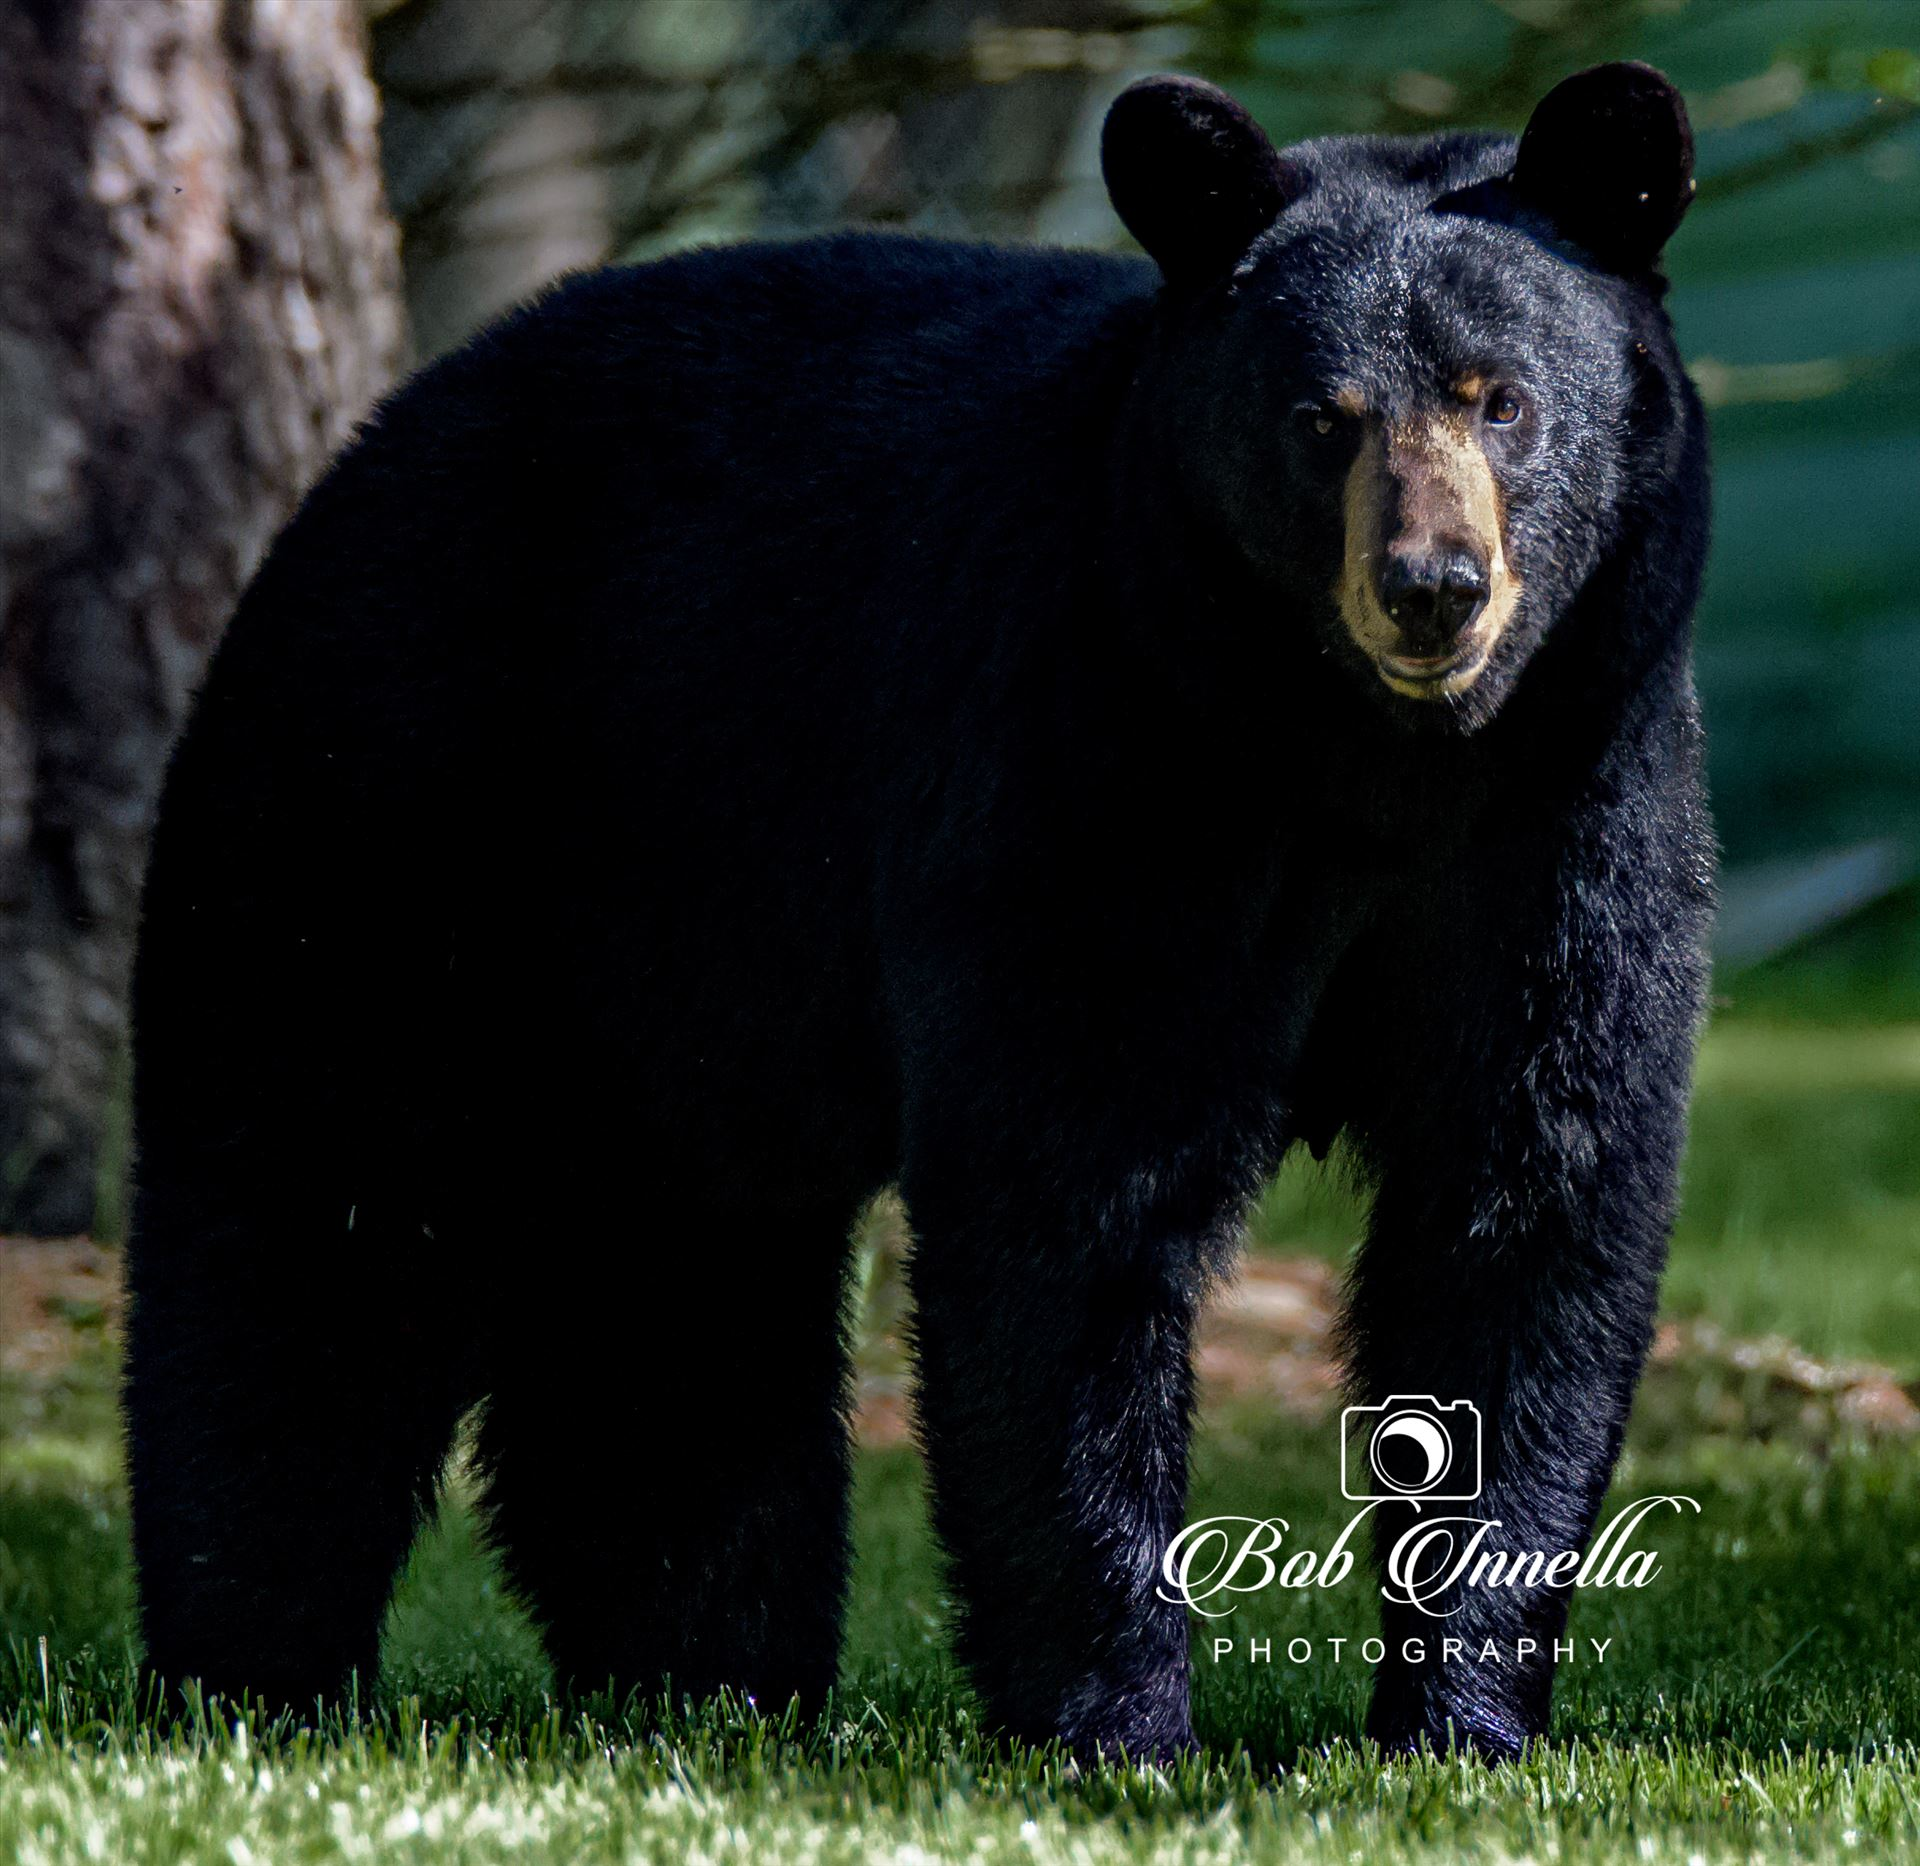 Black Bear_1669 - Taken along the Mongaup River, NY by Buckmaster